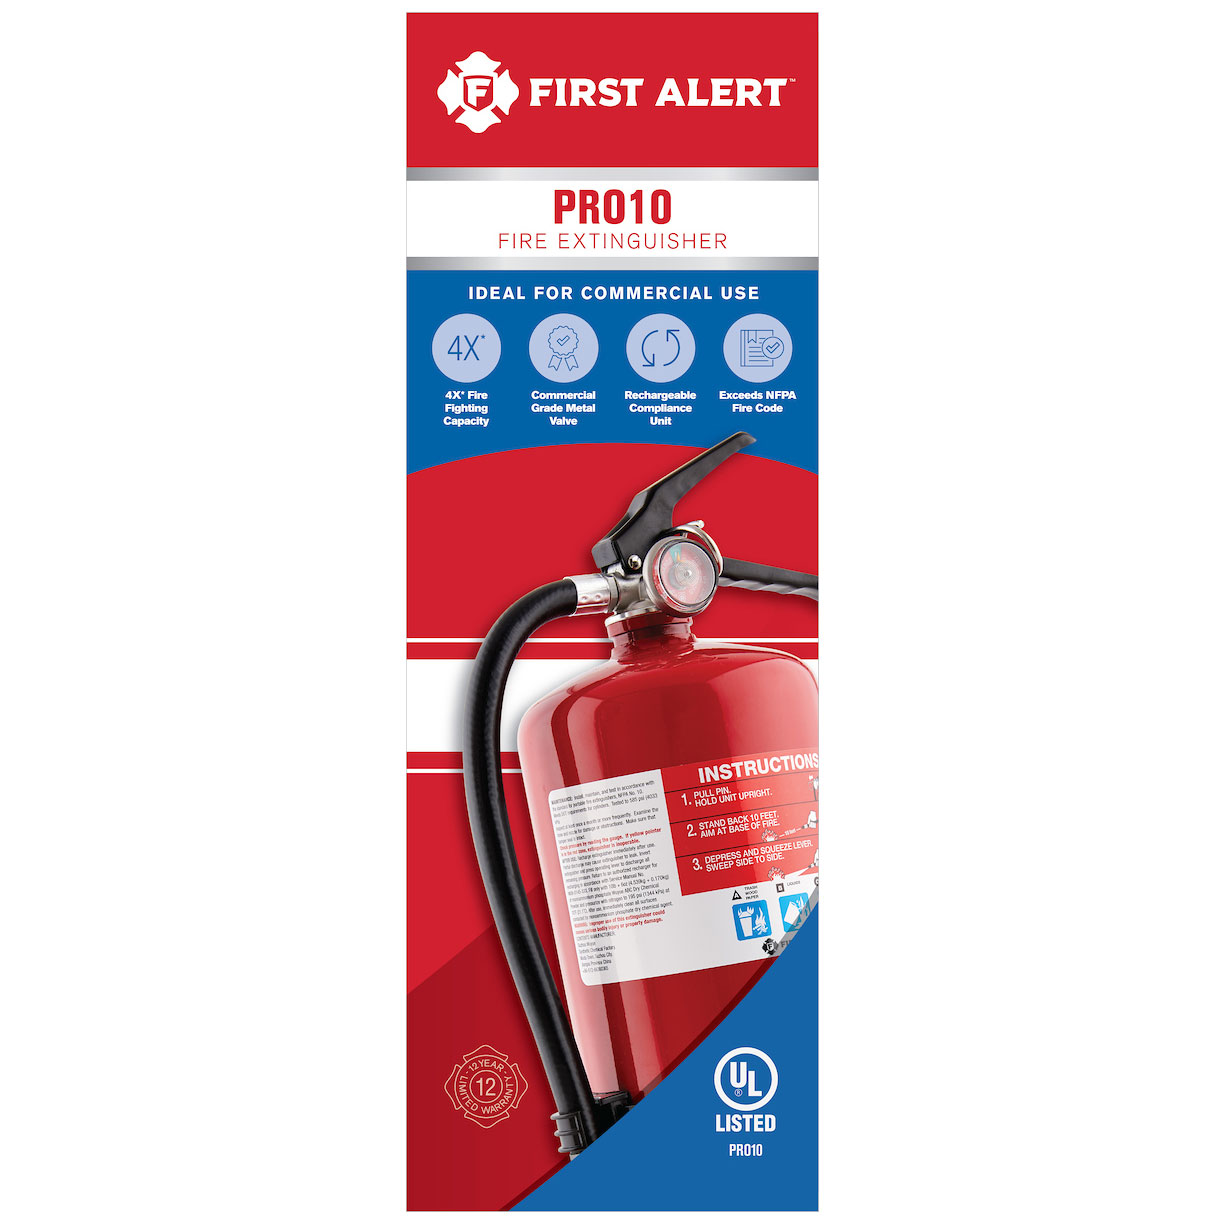 First Alert Rechargeable Commercial Fire Extinguisher UL rated 4-A:60-B:C (Red) - PRO10